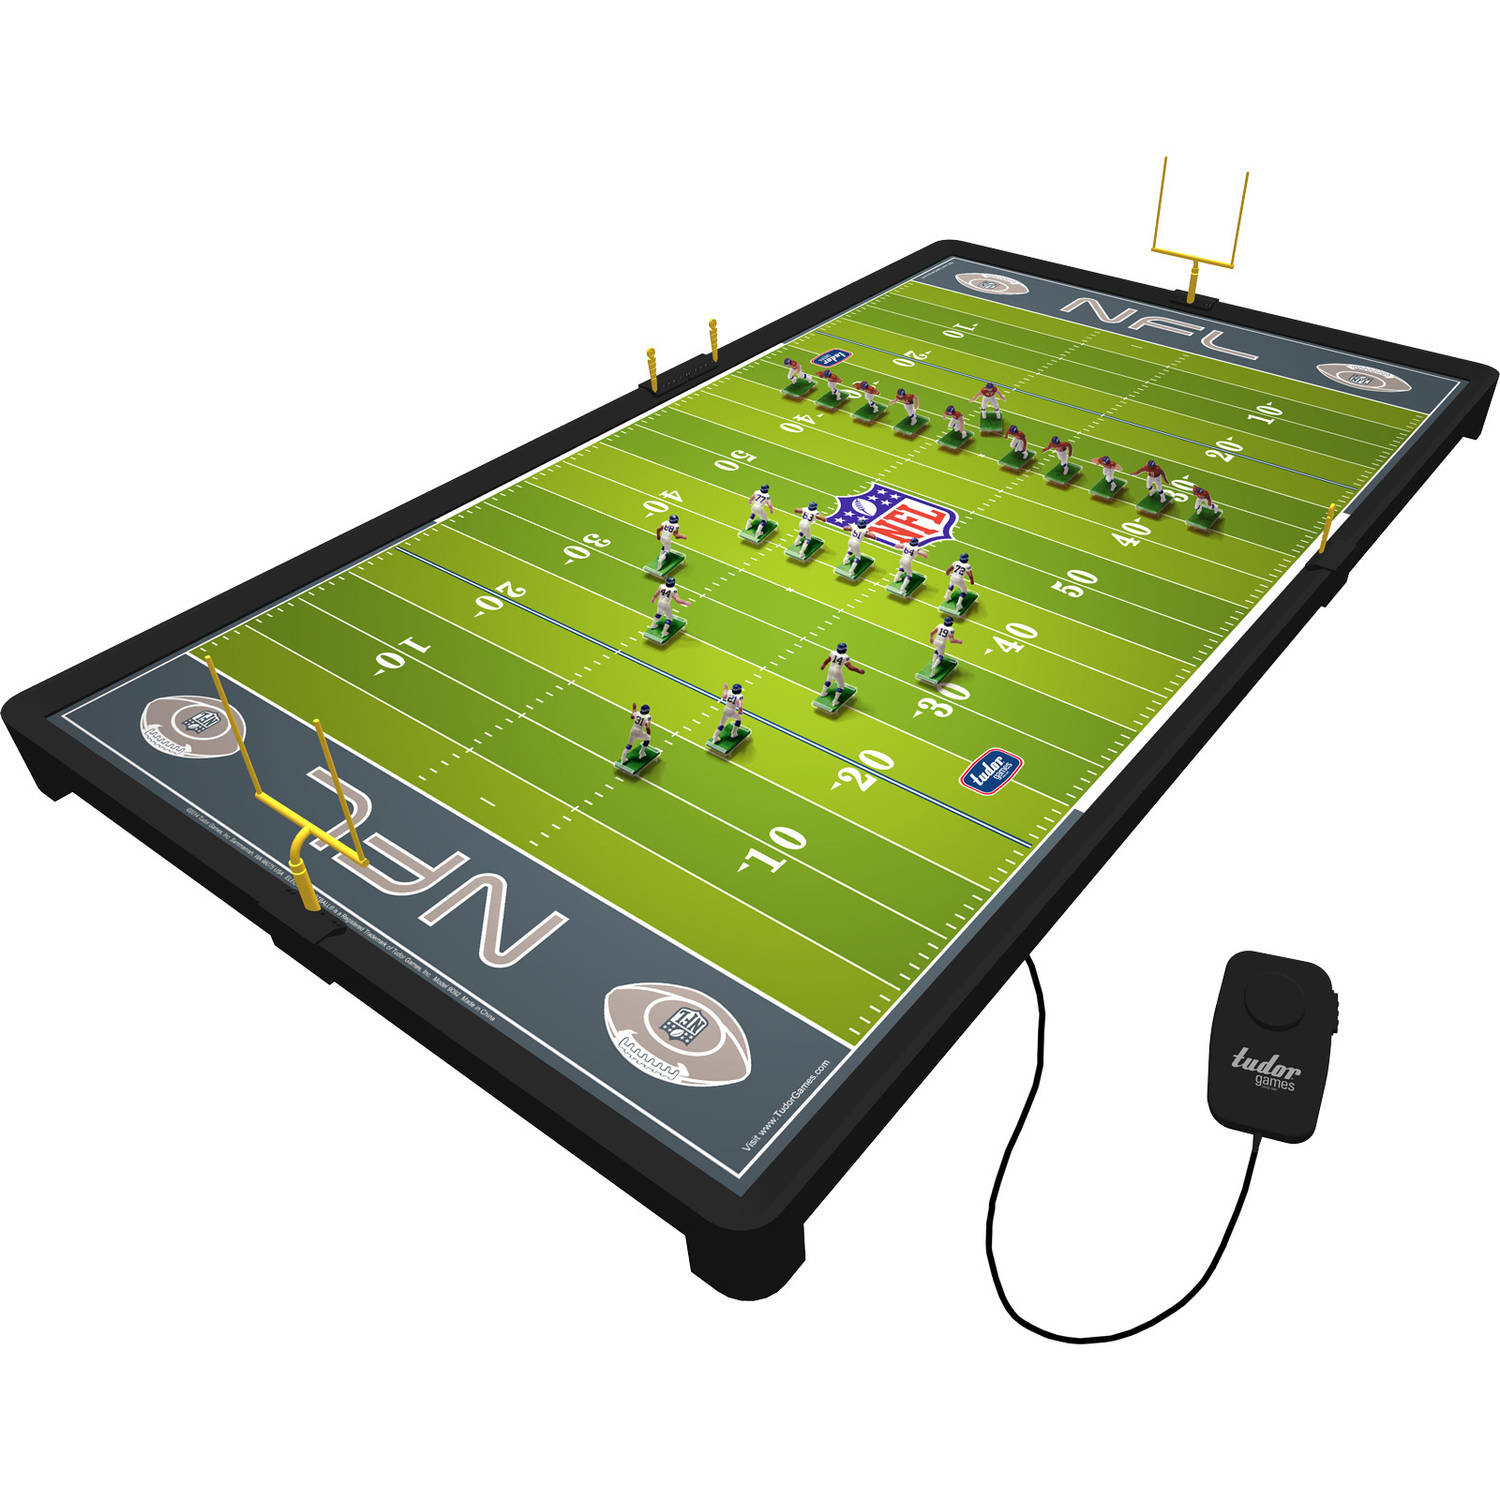 NFL Pro Bowl Electric Football by Tudor Games